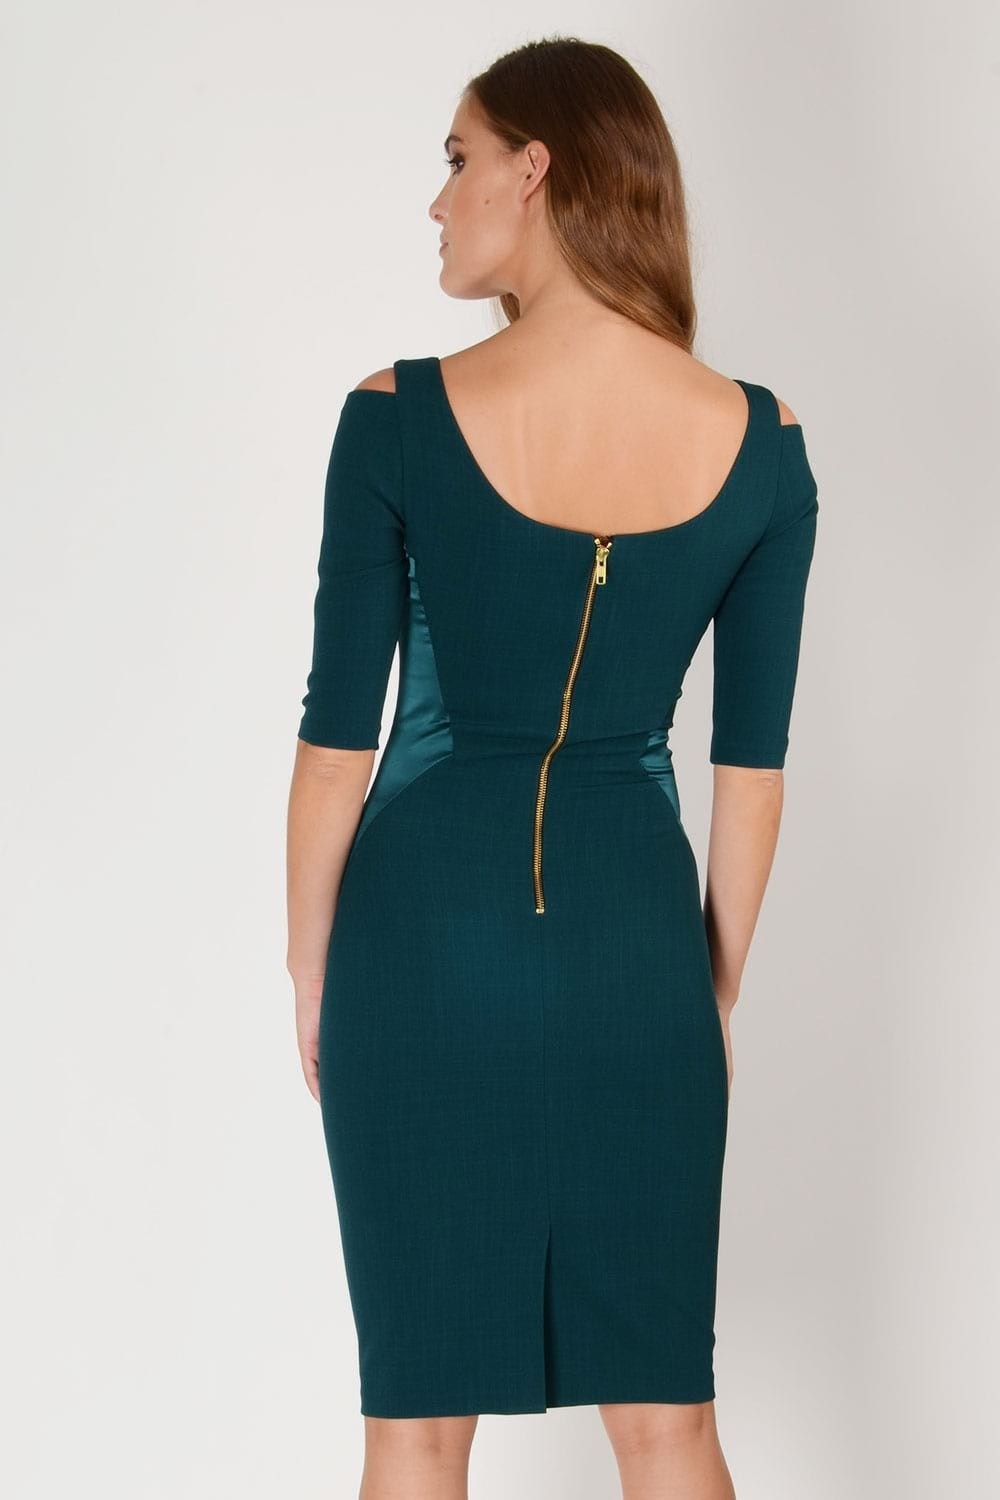 SUKI Dress Forest Green 8